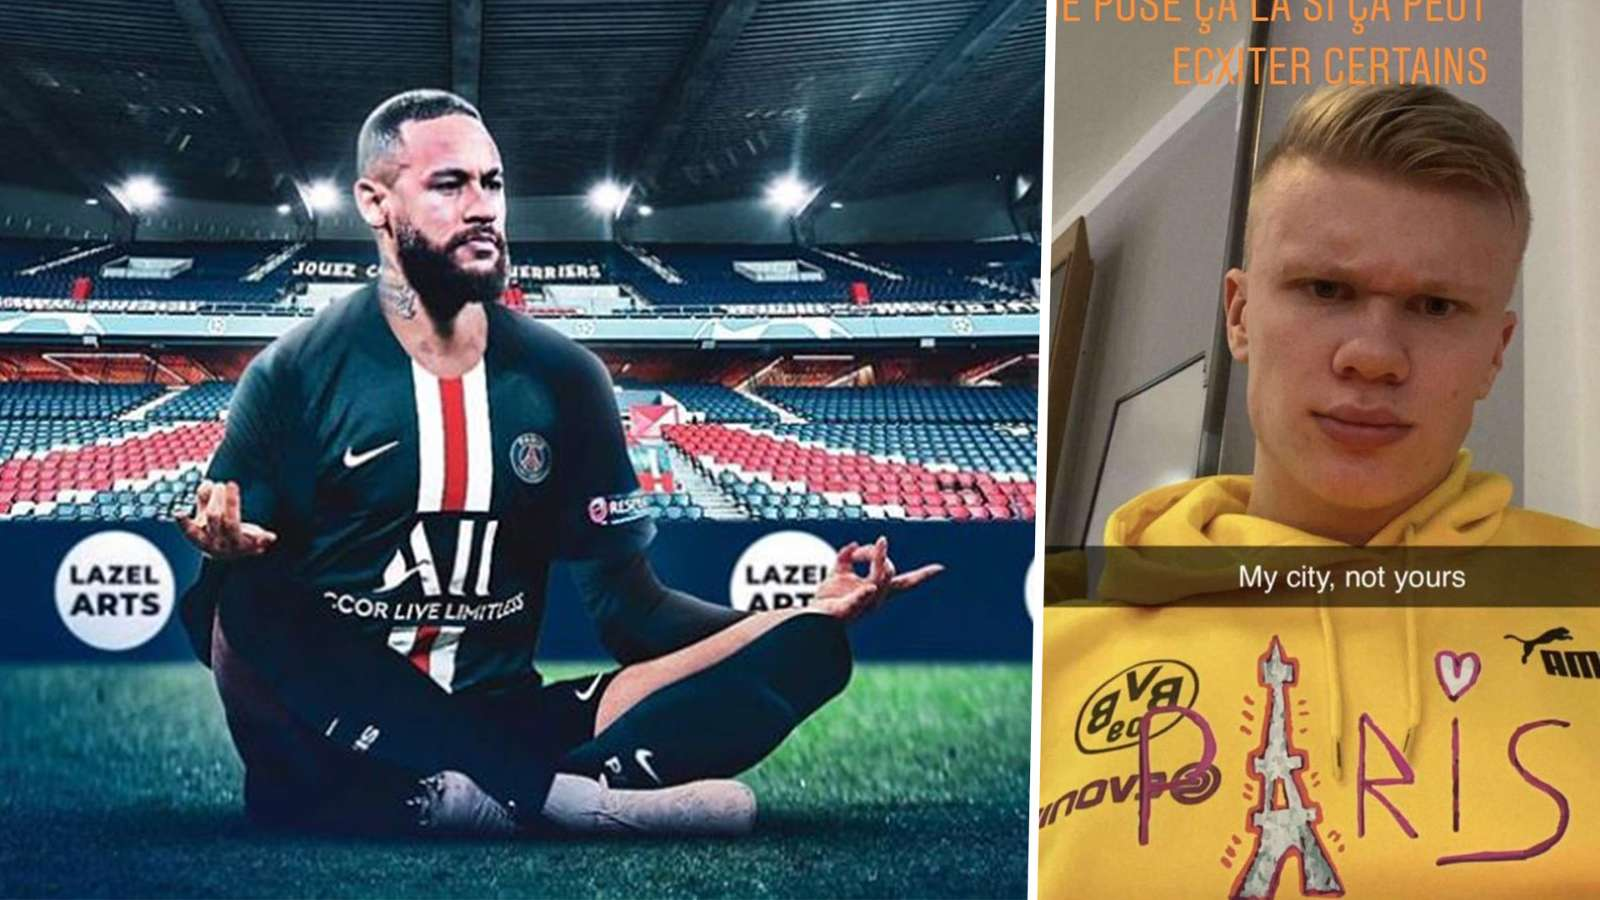 Neymar planned PSG's mocking of Erling Haaland in advance, reveals teammate Marquinhos